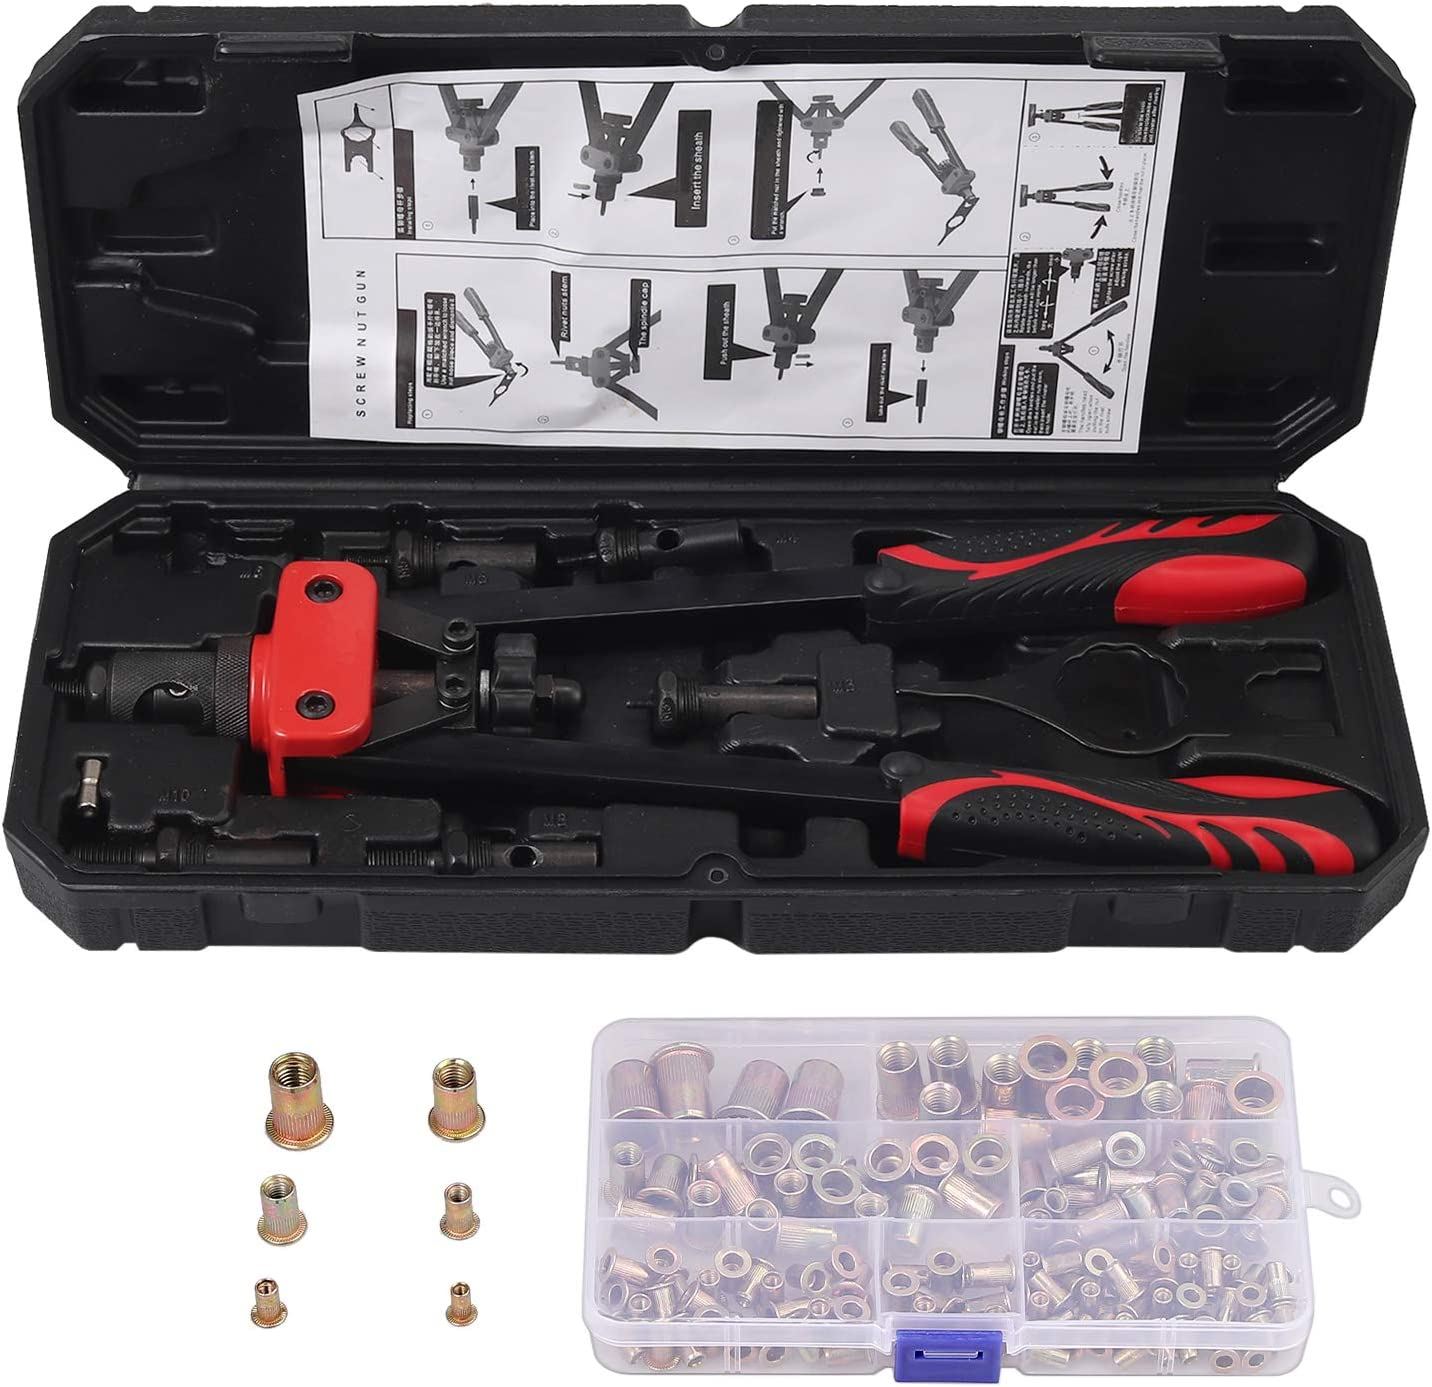 AUTOUTLET 14 Heavy duty Hand Rivet Nut//thread Setter Kit with 6pcs Metric Mandrels 150Pcs Rivet Nut red